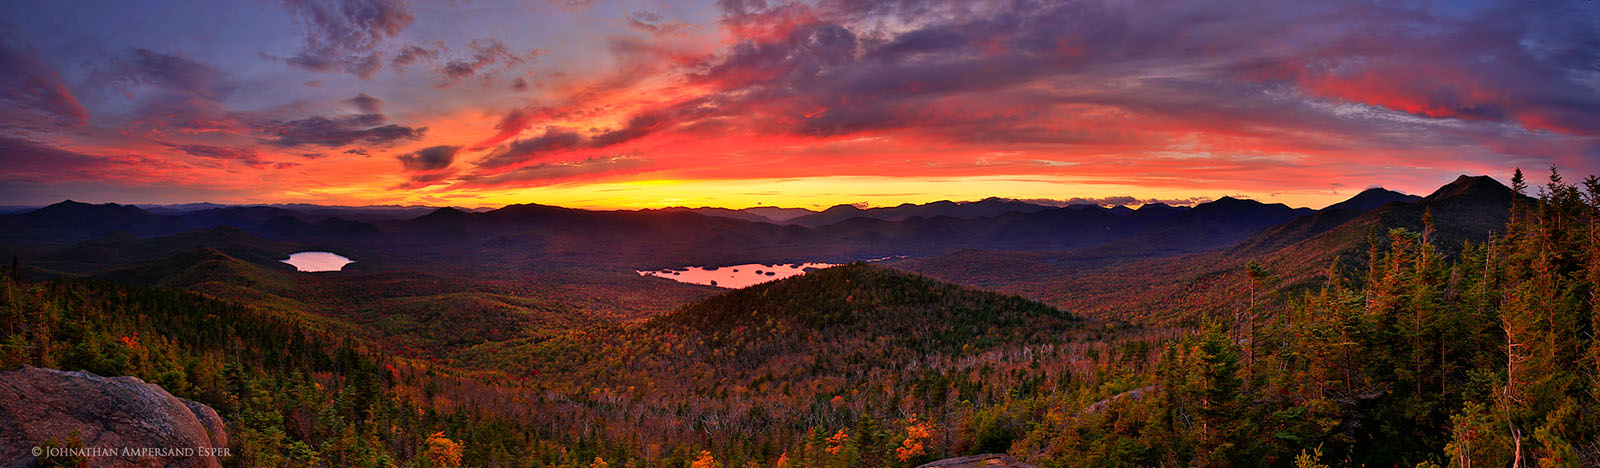 Elk Lake, Sunrise Mt, sunset,High Peaks,Adirondack mountains,Adirondacks,Clear Pond,Elk Lake Preserve,private